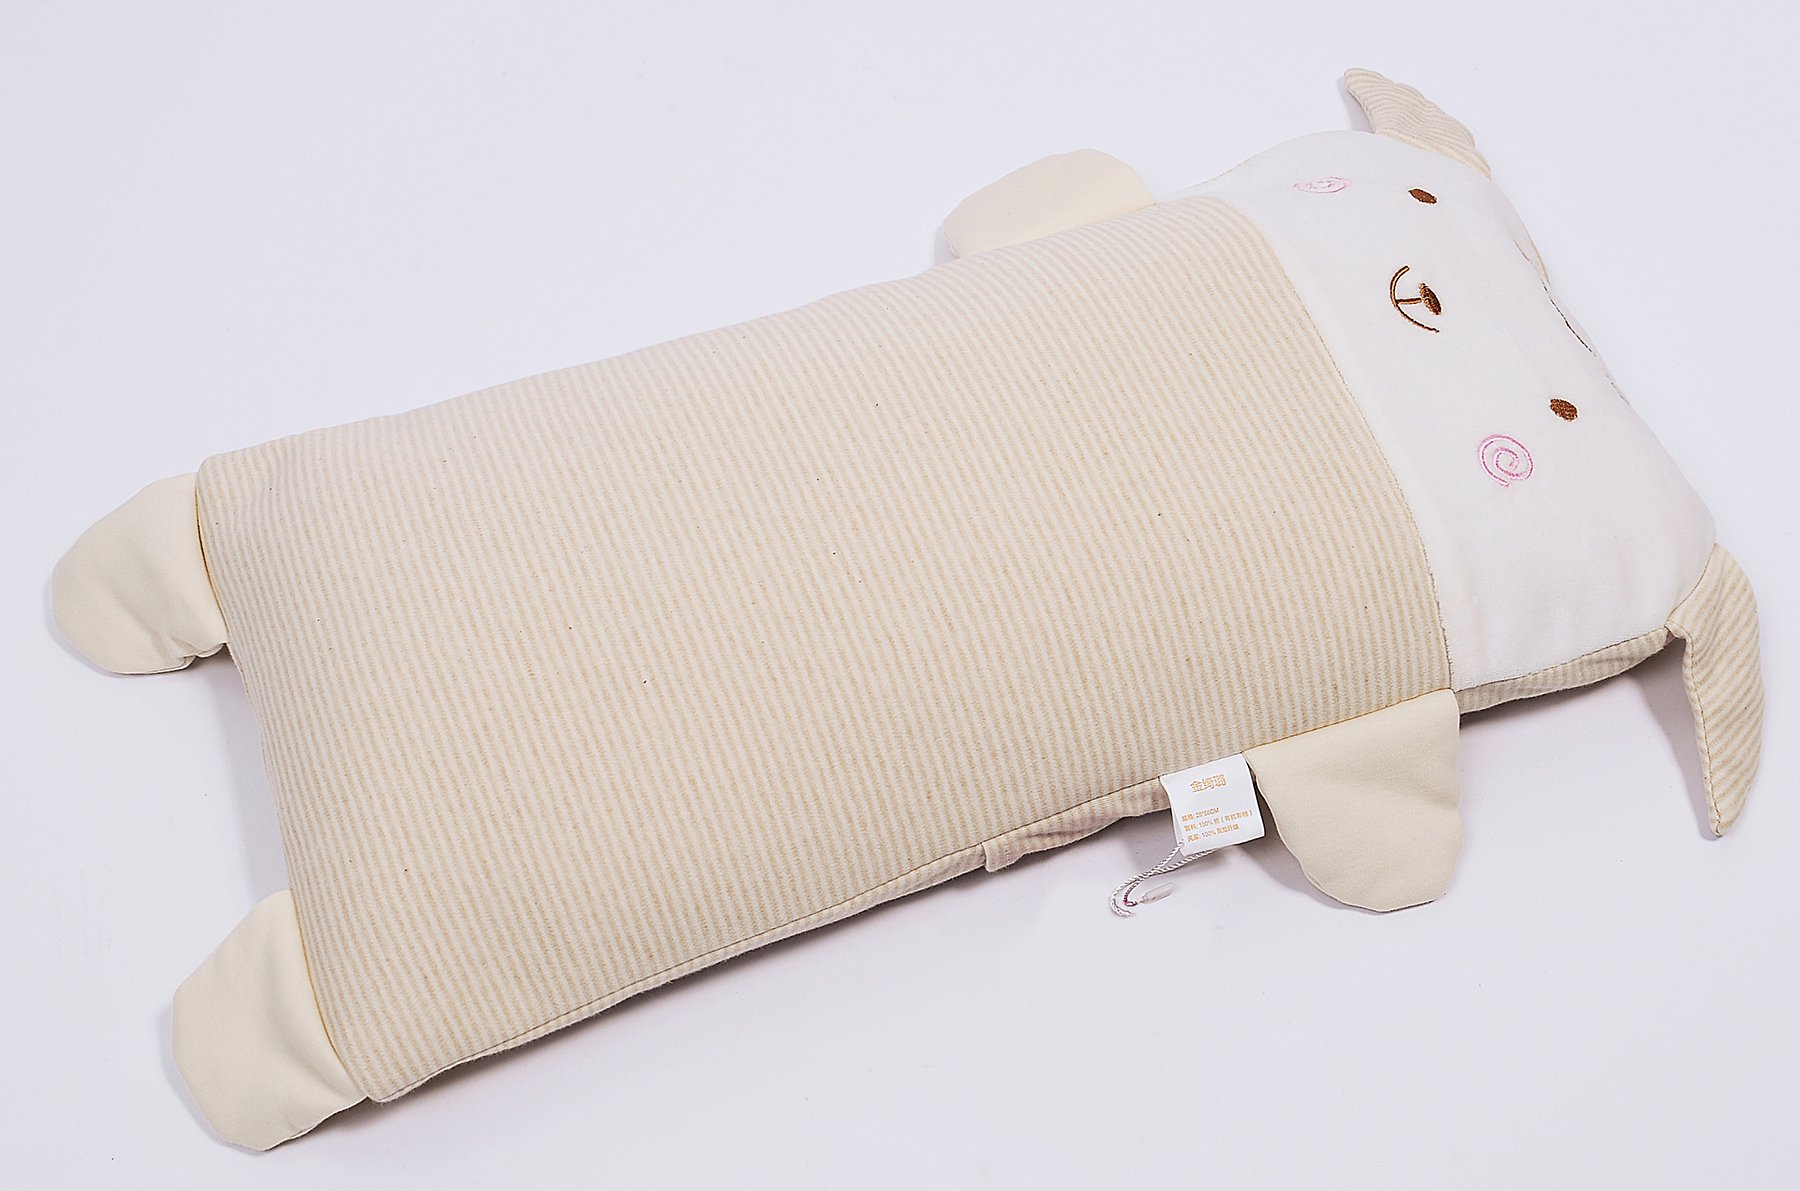 Baby Pillows Light Head Support Sleeping Breathable Organic Silk Cotton With Zipper To Prevent Flat Head (>2y)